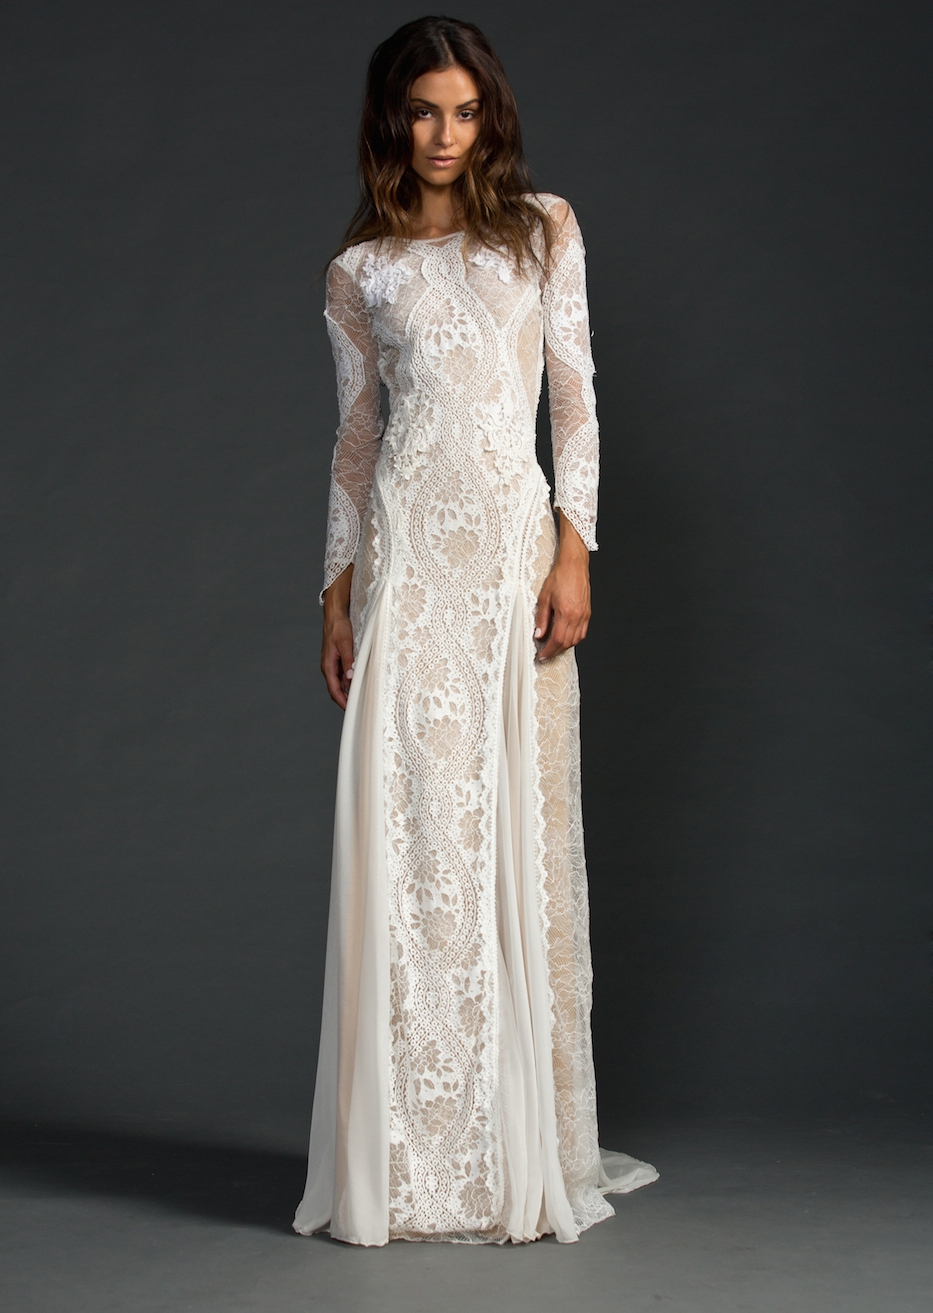 Wedding Dresses For   Second Hand : Grace loves lace inca second hand wedding dress on sale